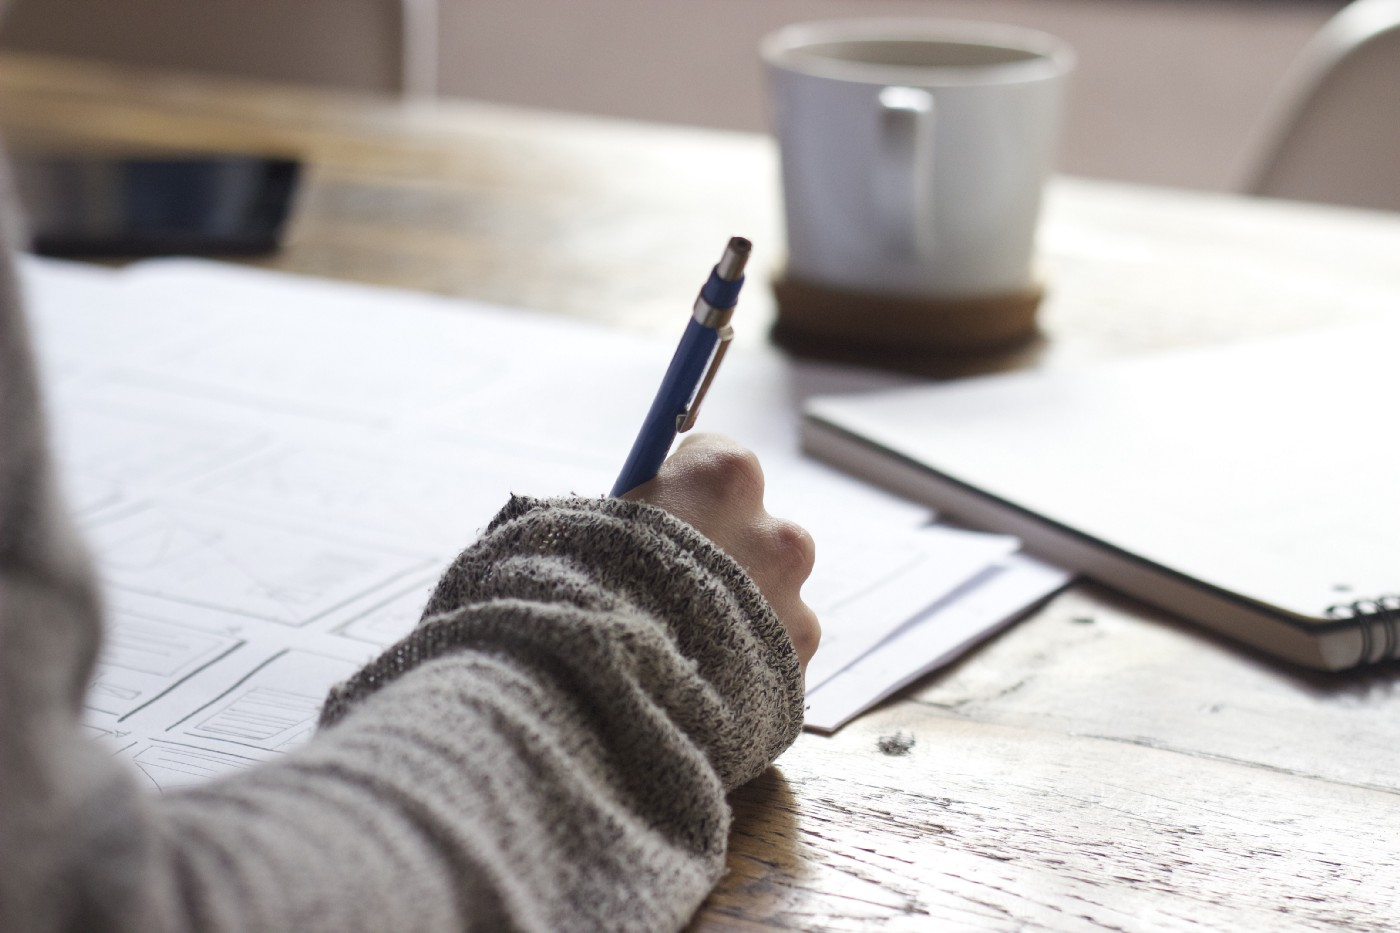 Person writing with pen and cup of coffee in background.